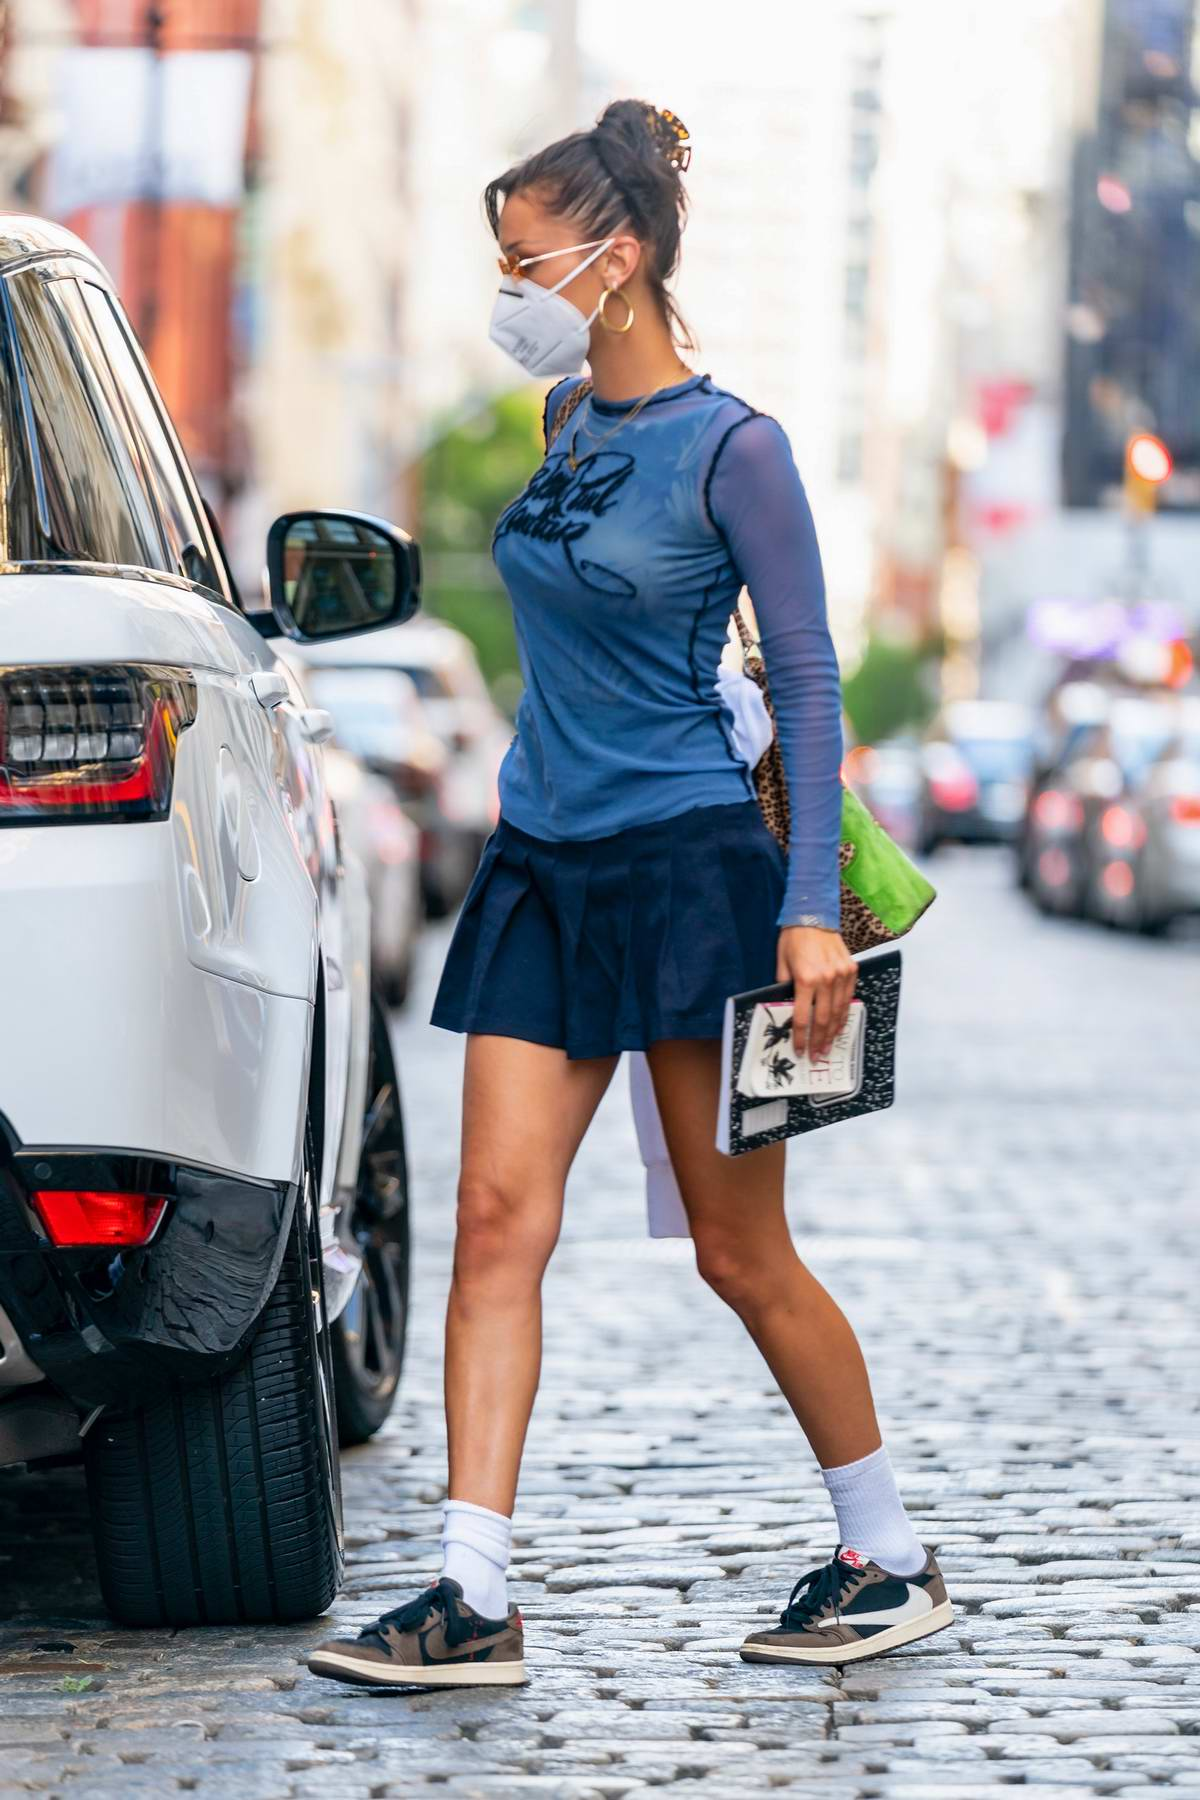 Bella Hadid looks stylish in Jean Paul Gaultier top and pleated mini skirt while heading out in New York City